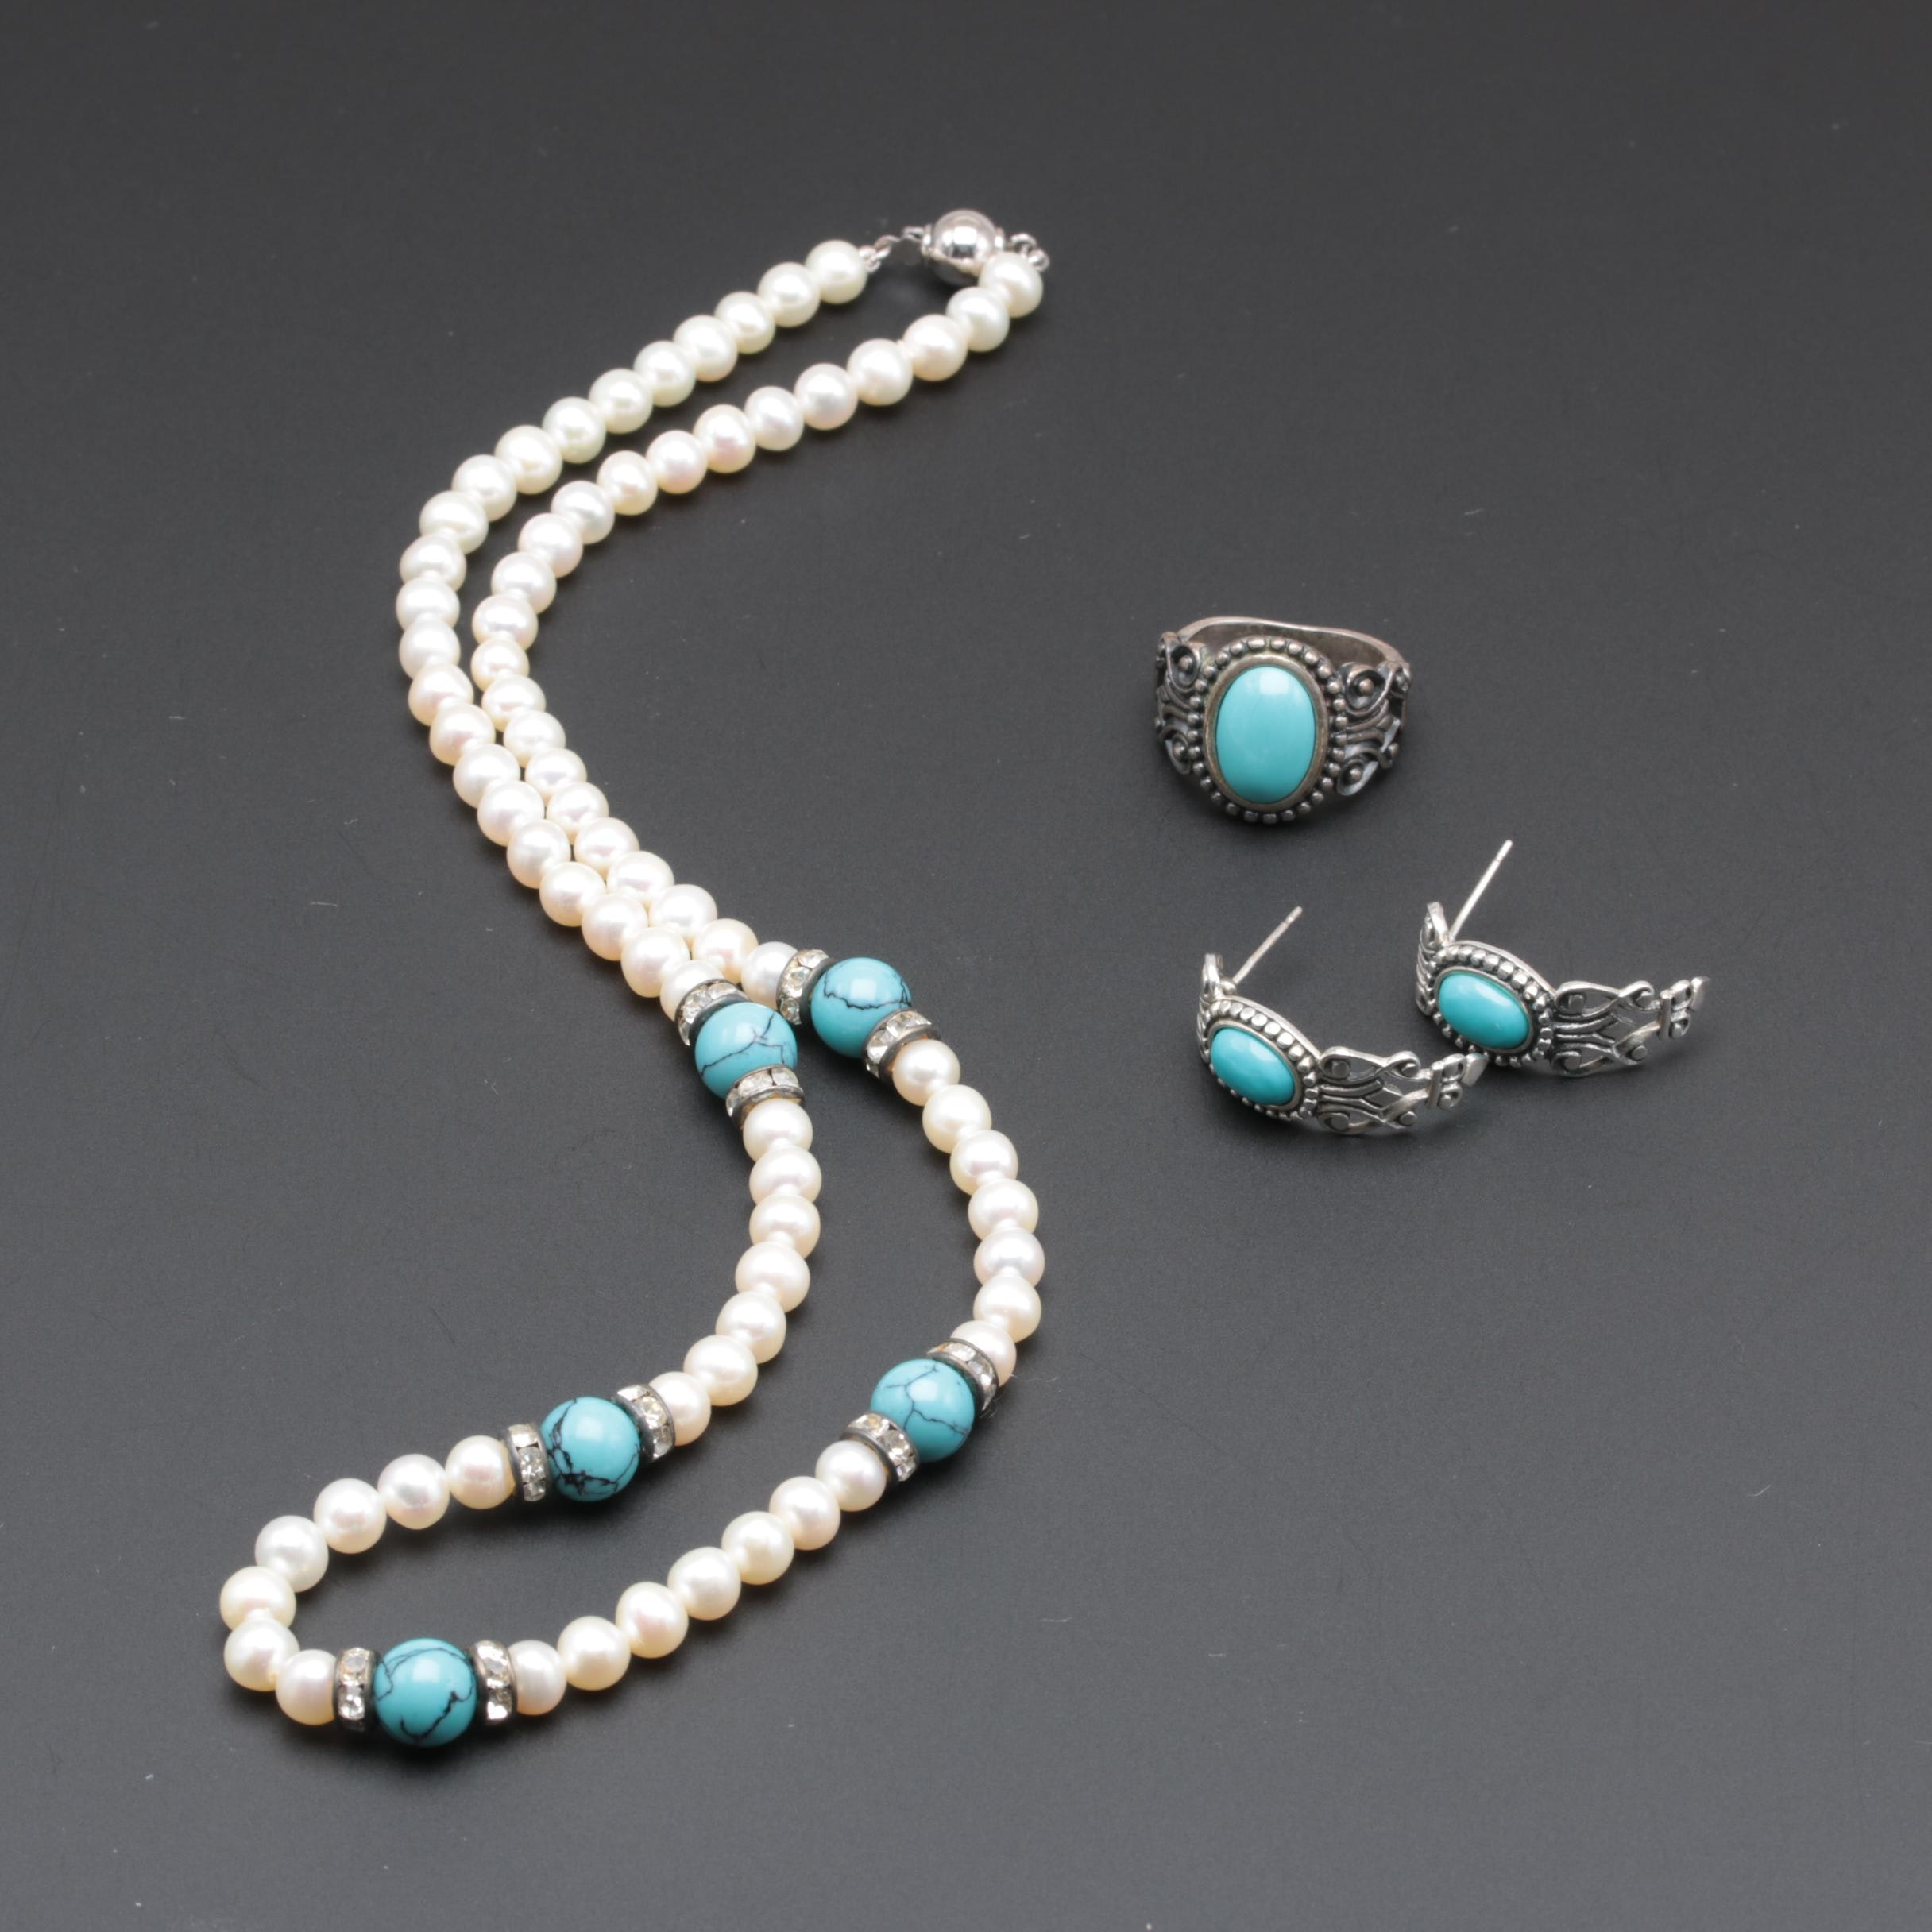 Sterling Silver Jewelry Featuring Cultured Pearl and Imitation Turquoise